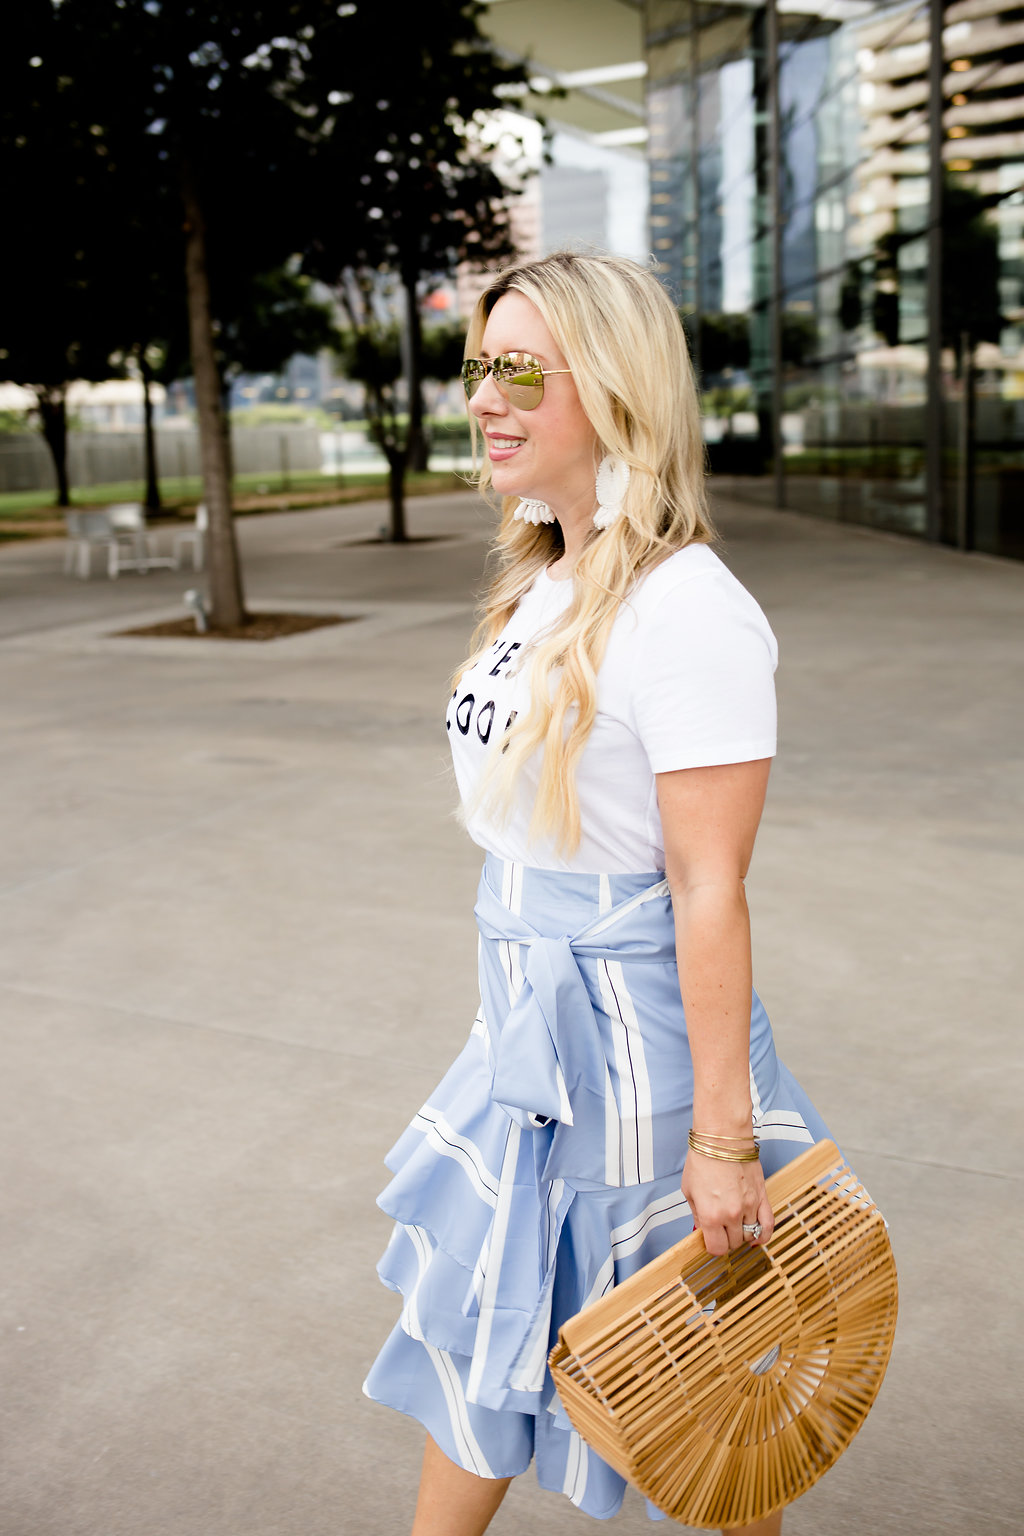 Graphic Tee & Ruffle Skirt | The Darling Petite Diva